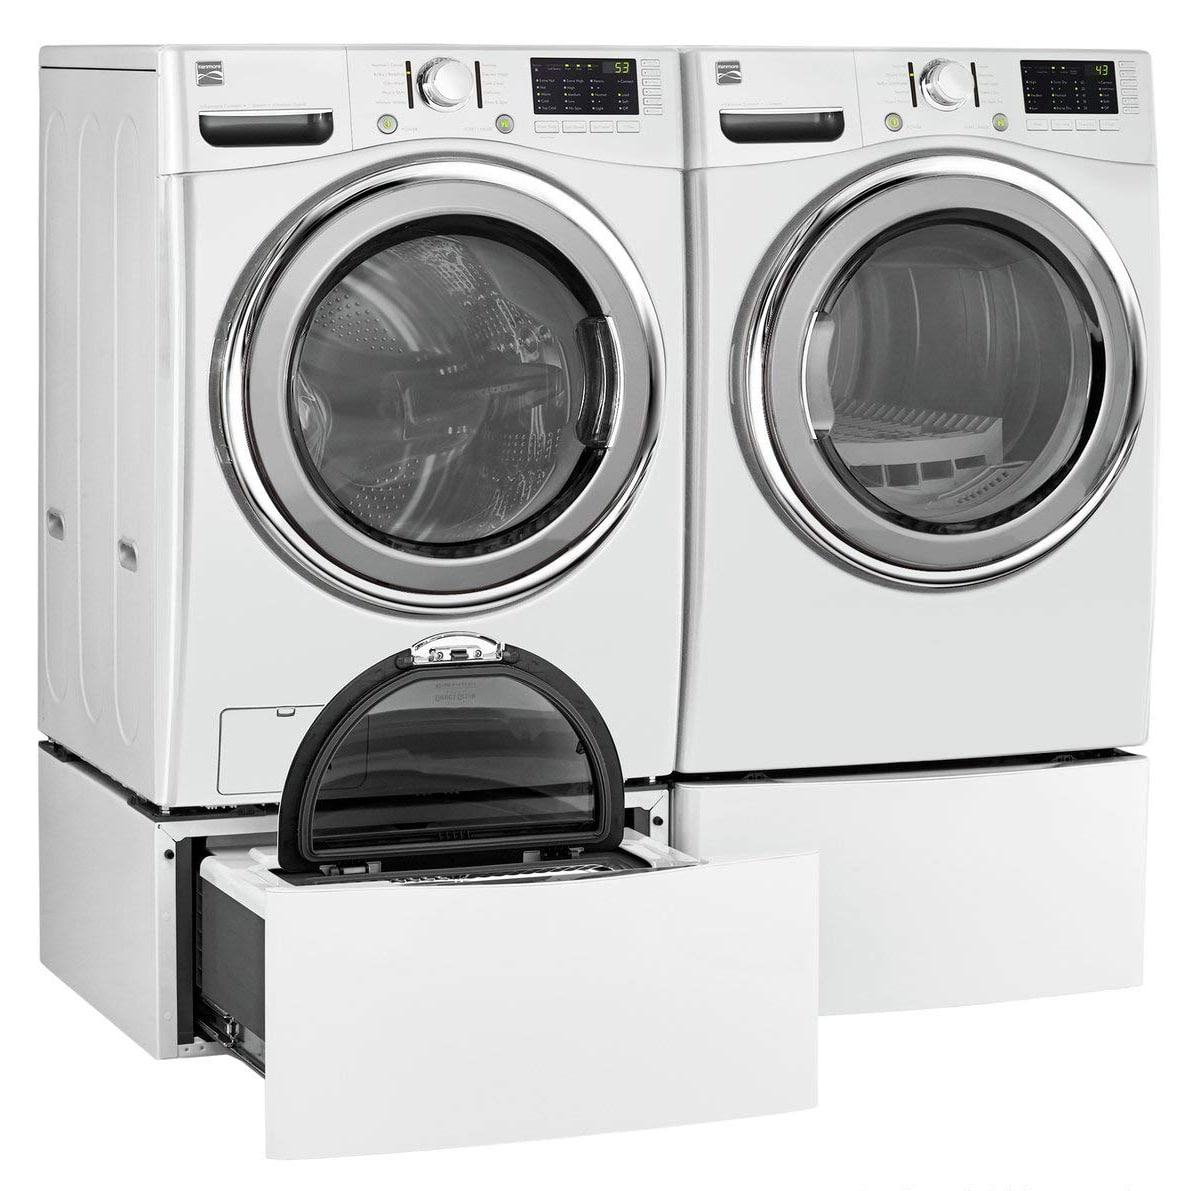 3.22 Cu.Ft Portable Front Load Tumble Laundry Dryer w//Stainless Steel Tub White Ideal for Home ROVSUN 13.2LBS Electric Compact Clothes Dryer Apartment RVs Dorm Touchpad Contro /& LED Display